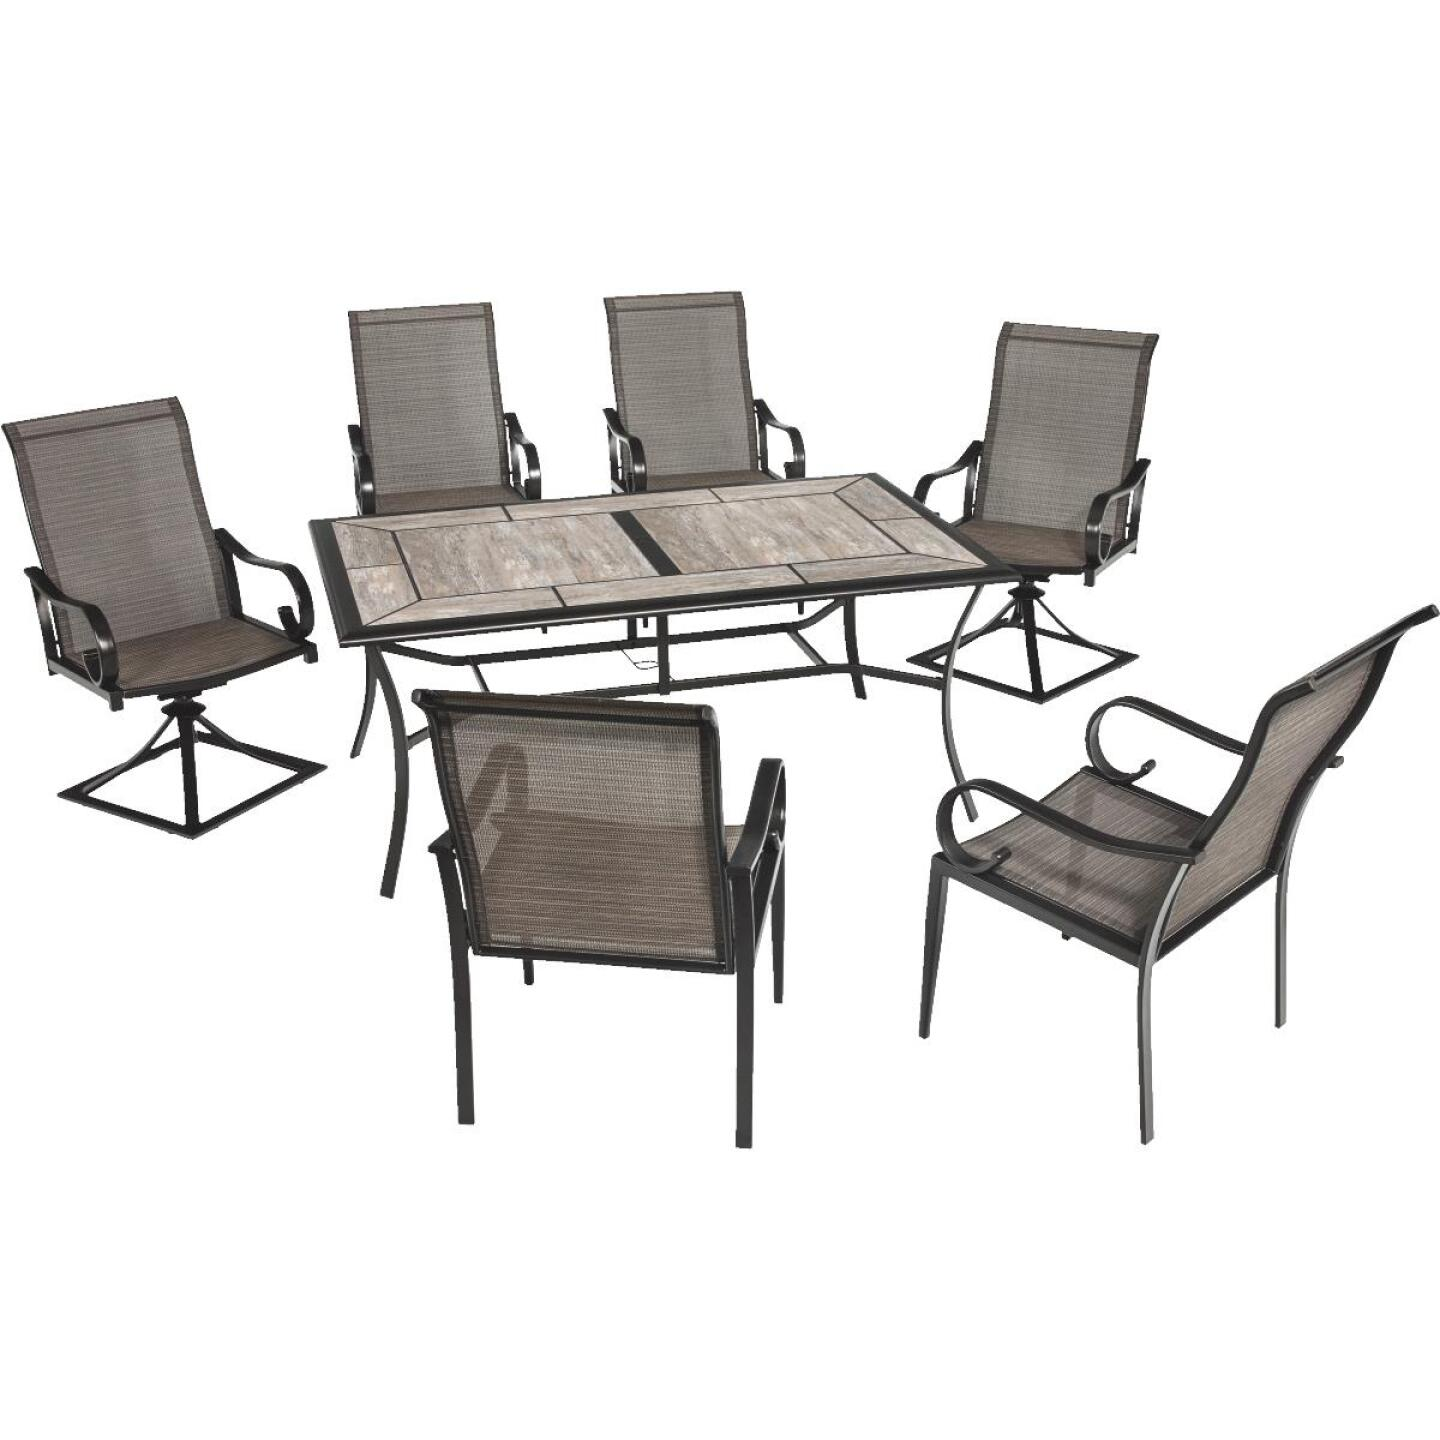 Outdoor Expressions Berkshire 7-Piece Dining Set Image 171